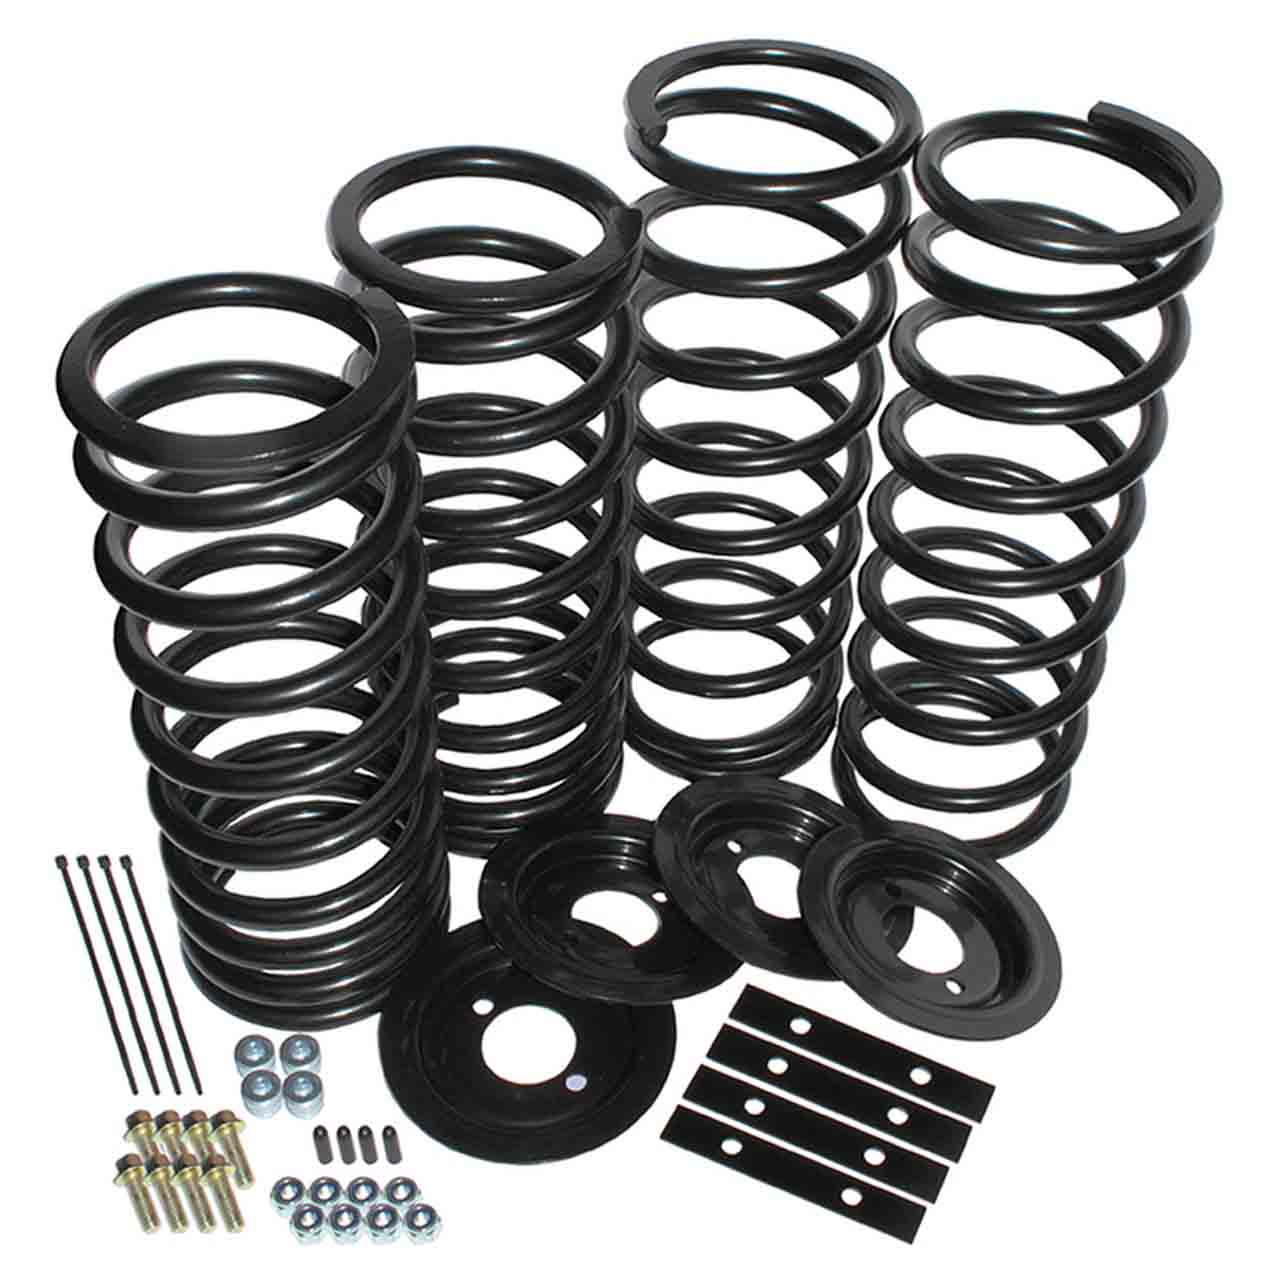 Kit Sollevamento Range Rover Classic Air Spring 1 Range Rover Classic Land Rover GR2-06232